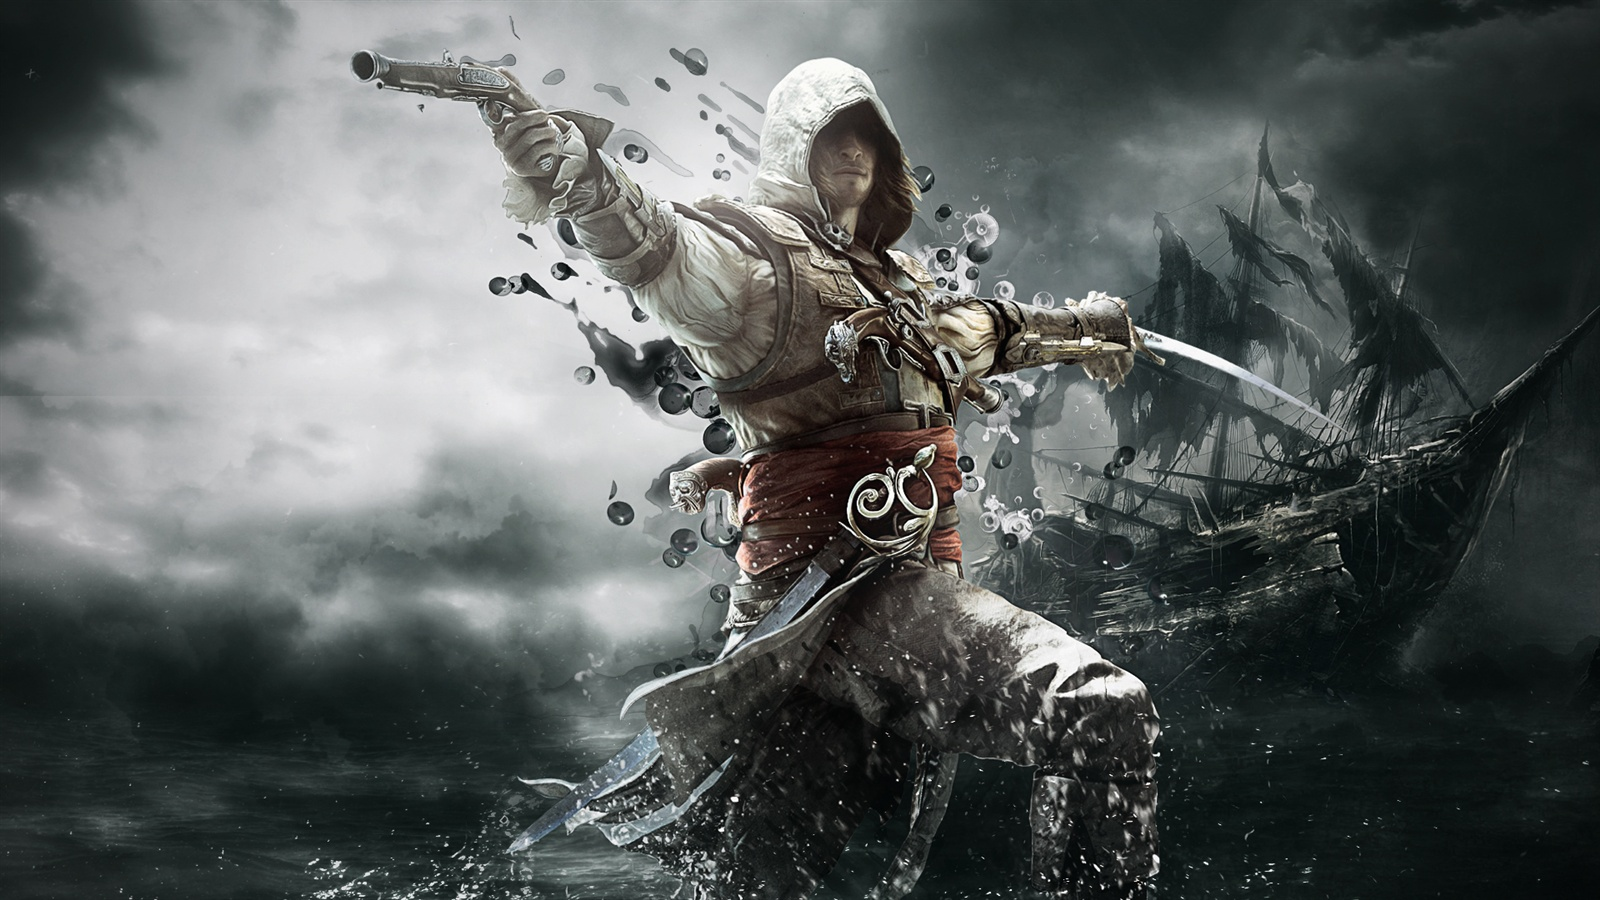 1600 x 900 gaming wallpaper: Papéis De Parede 2013 Jogo, Assassins Creed 4: Black Flag